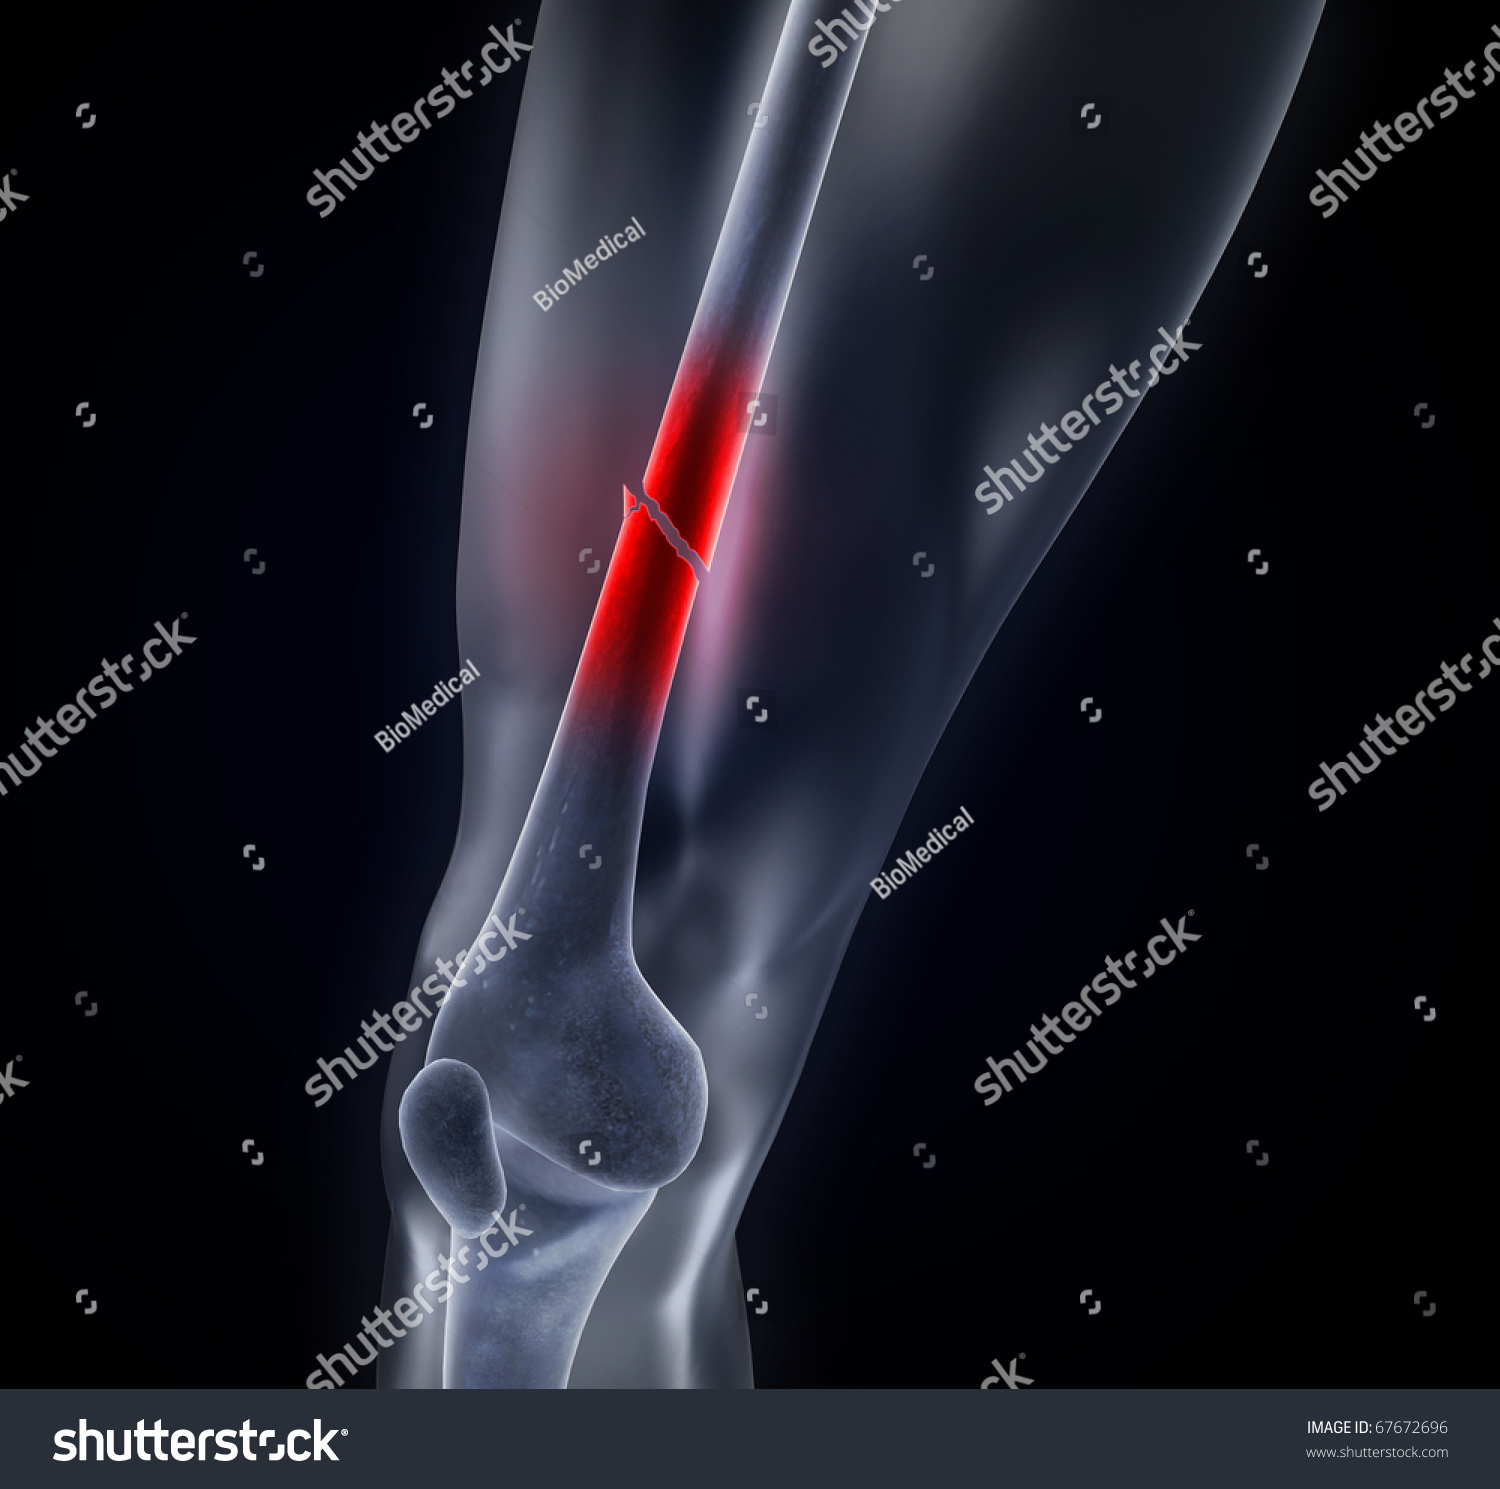 Crushed Human Bone : Fractured femur skeleton broken leg stock illustration